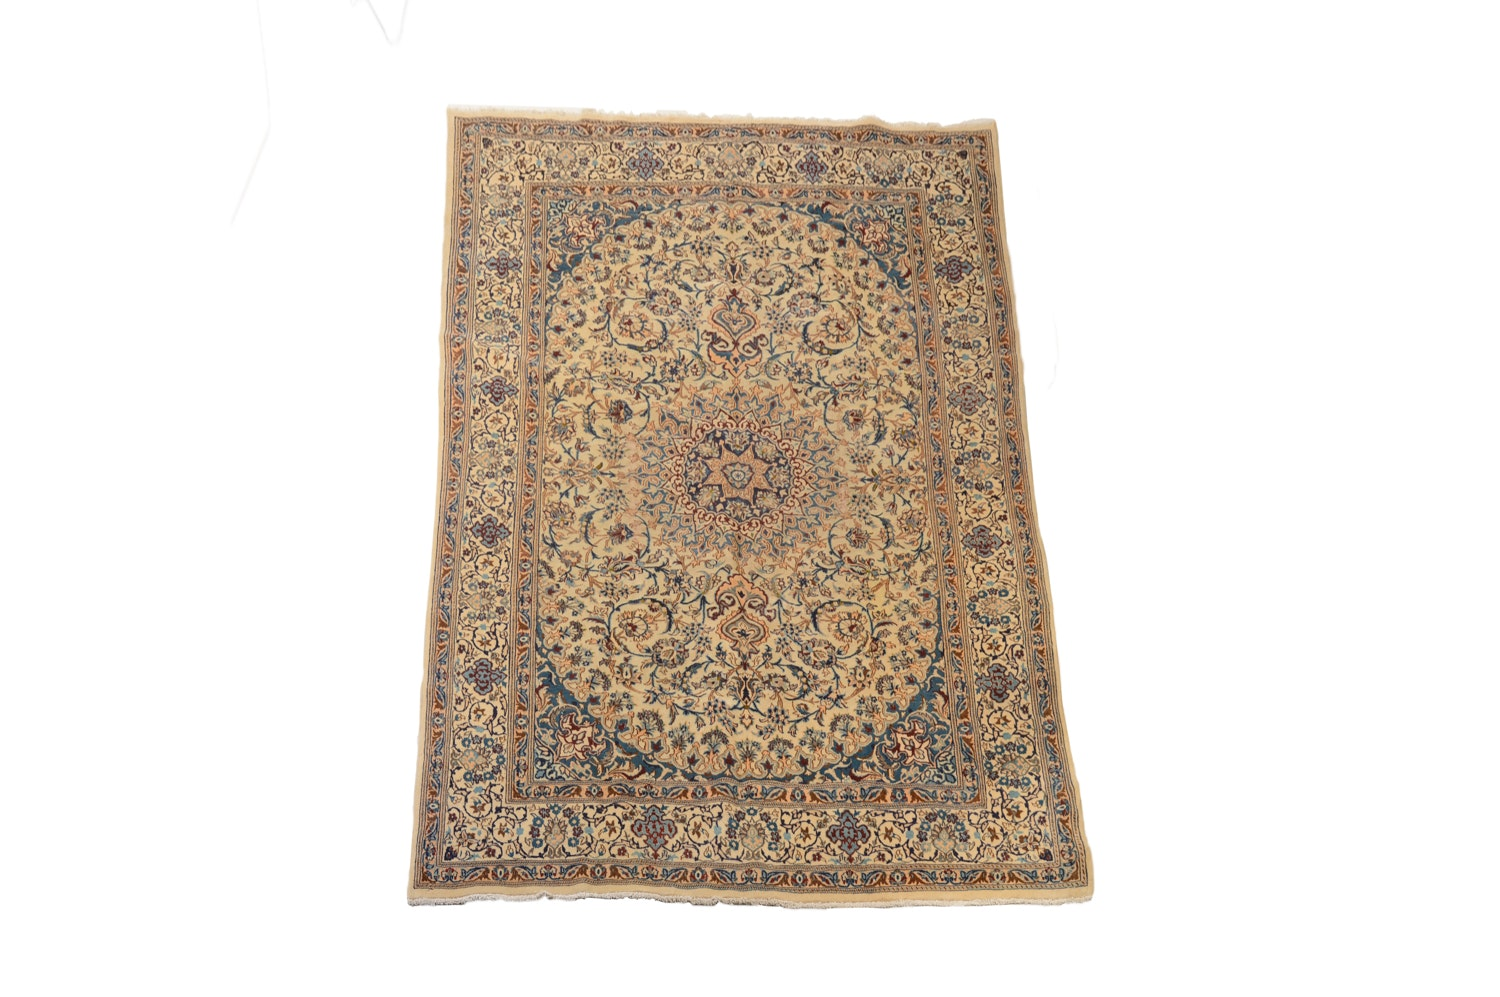 Vintage Hand-Knotted Persian Nain Wool and Part Silk Area Rug